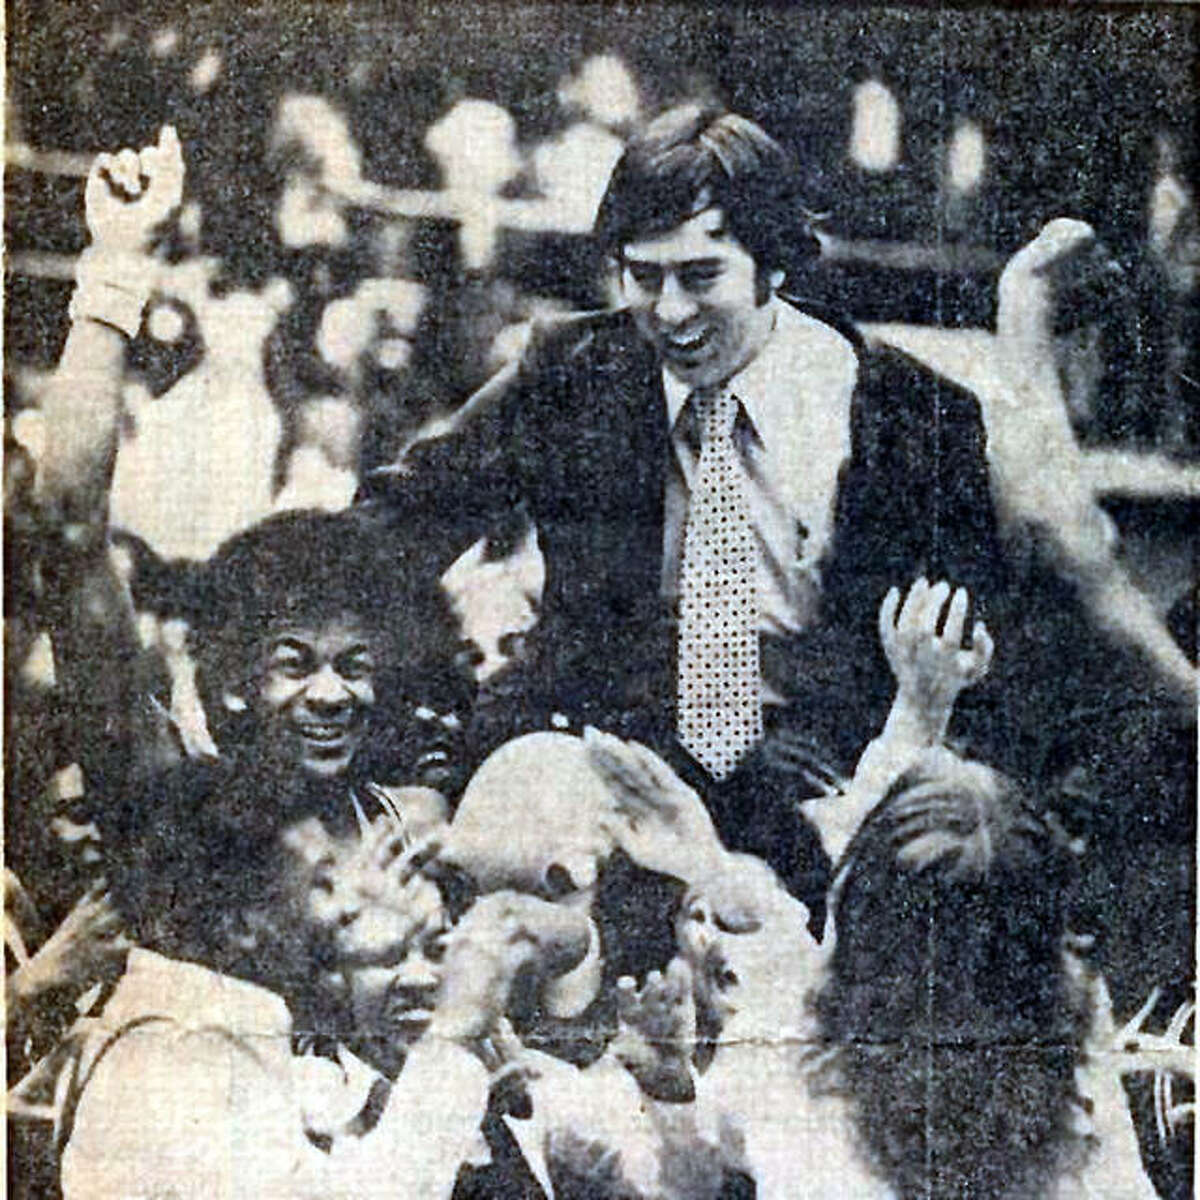 Coach Larry graham is carried off the court by Madison Trojans team and fans after winning the Vandalia Class A Sectional championship in 1977 on their way to the Class A state championship. Graham, who went on to lead Madison to another state title before moving to SIUE to become the Cougars' winningest coach, died Monday at the age of 77.